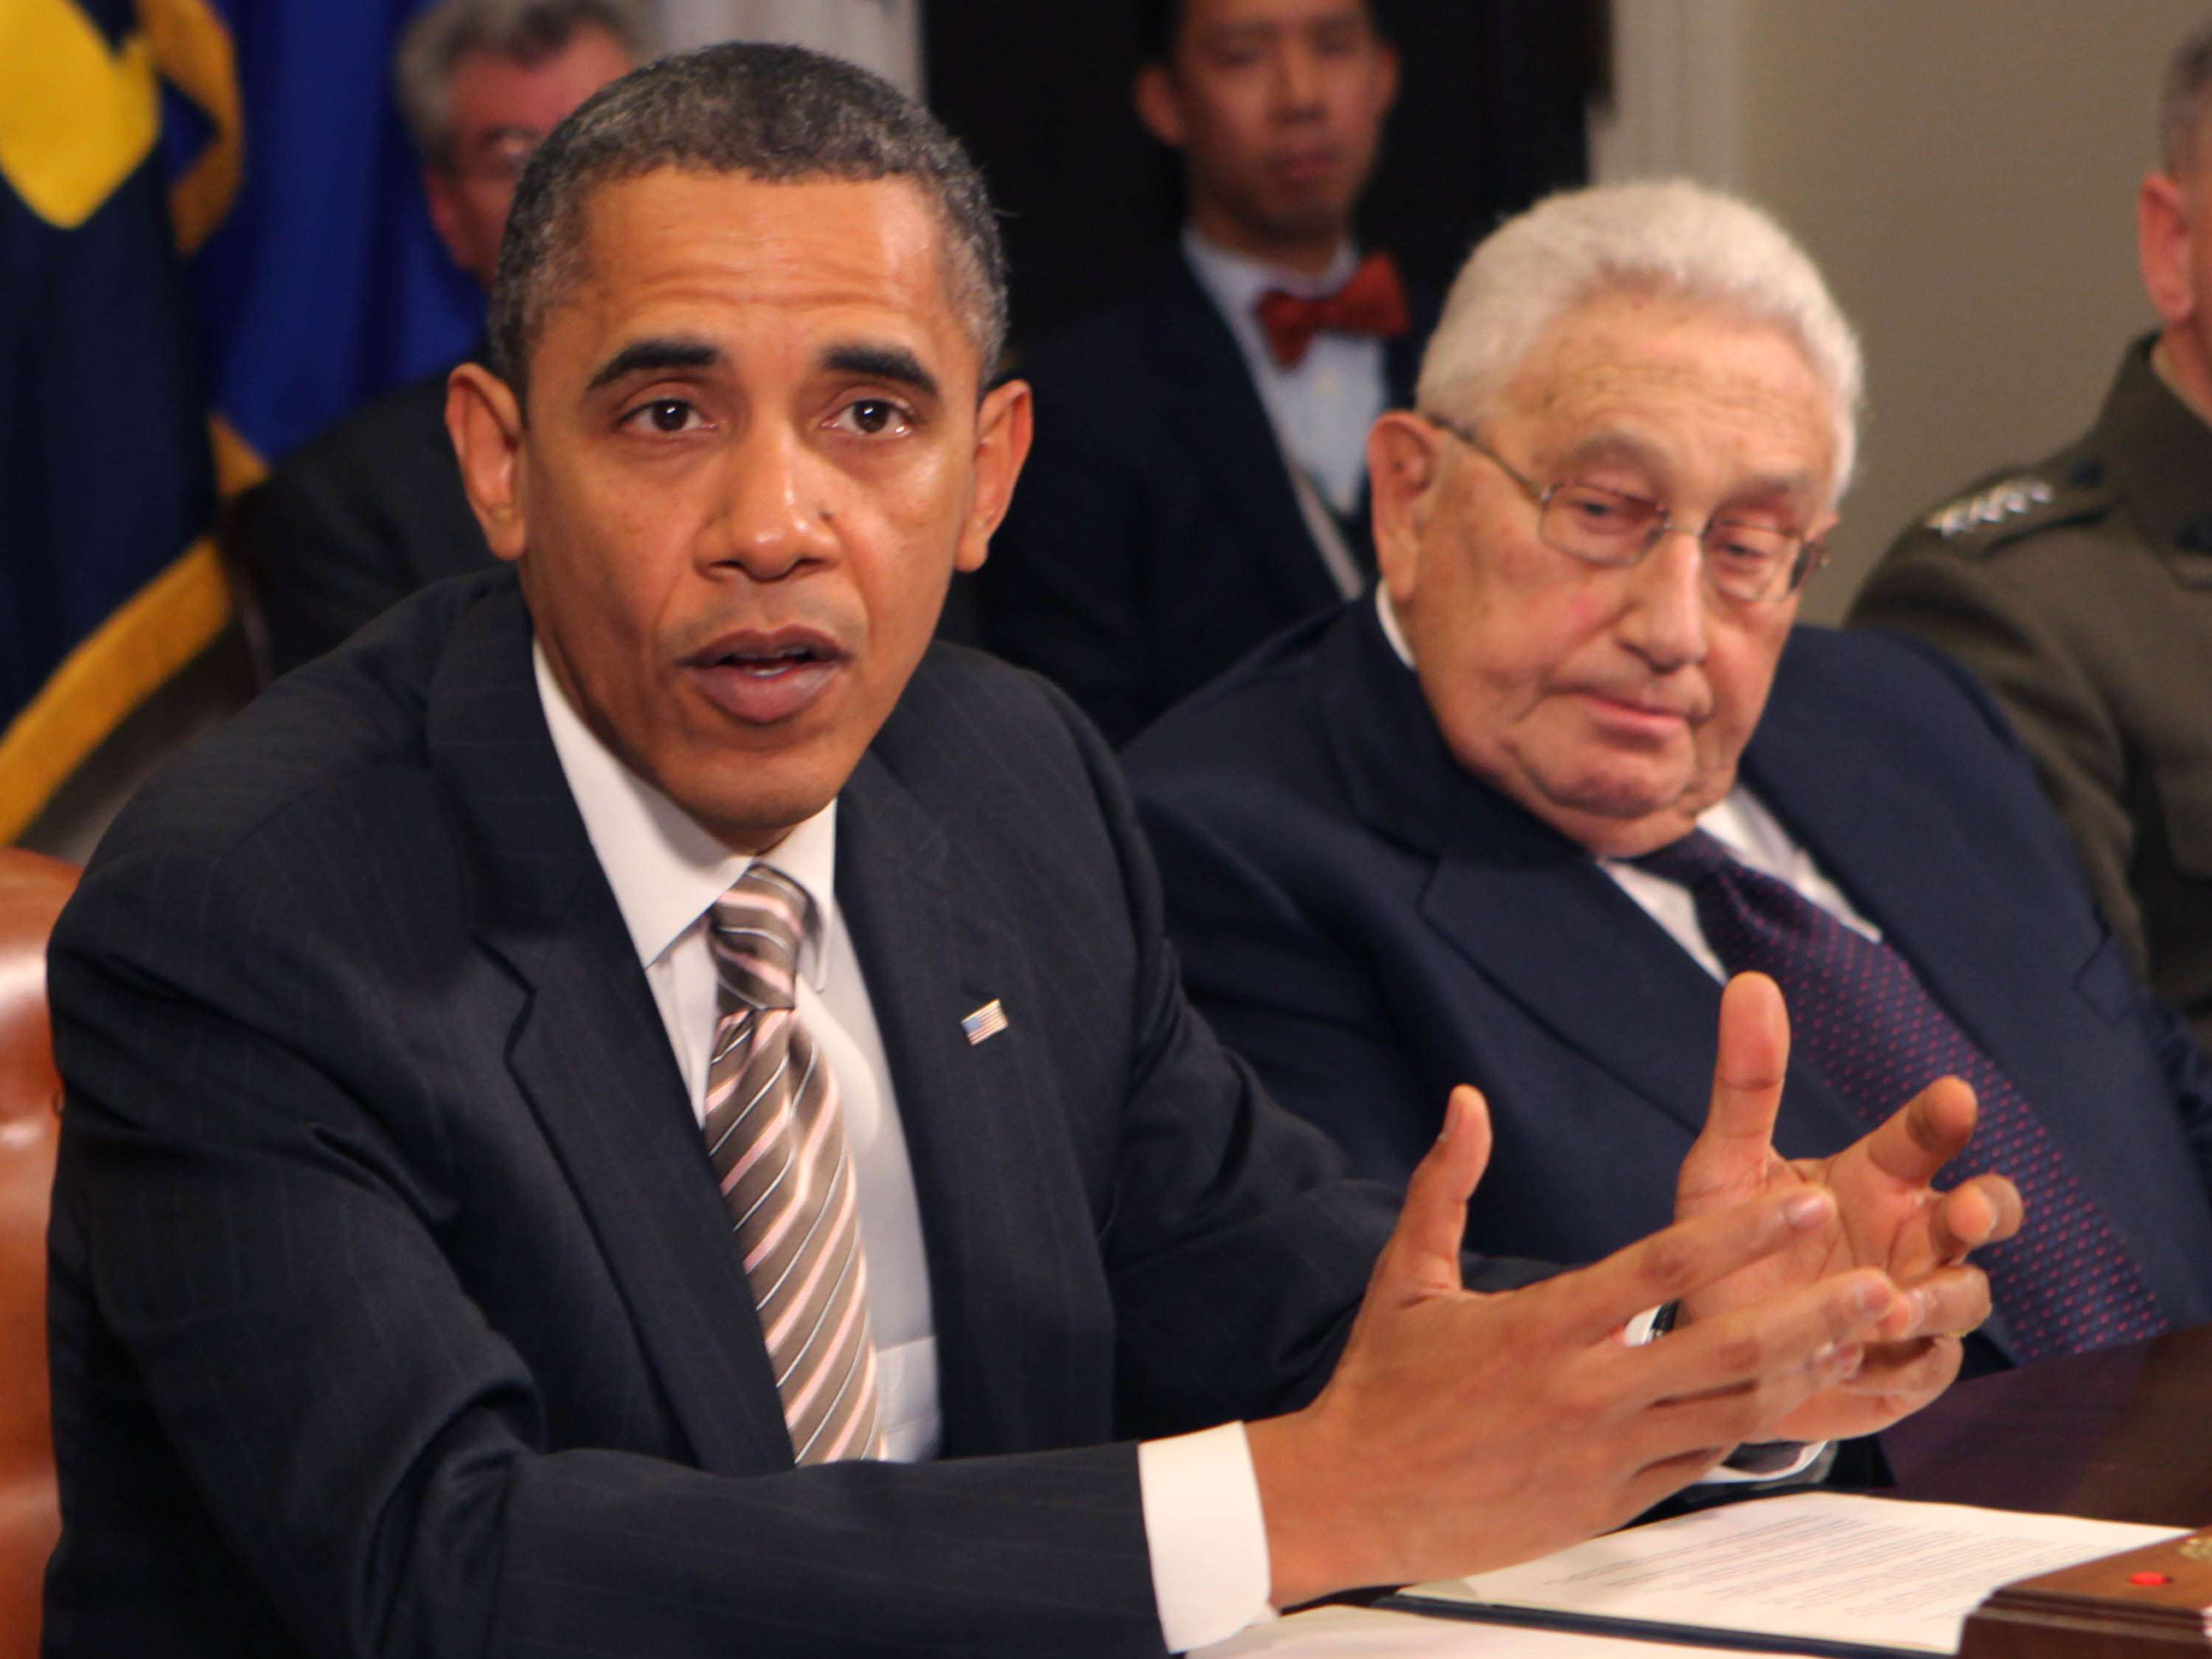 November 18, 2010 - Washington, D.C. - President Barack Obama makes a statement during a meeting with present administration officials and former Secretaries of State and Defense in the Roosevelt Room of the White House on November 18, 2010. (left to right. President Obama, Henry Kissinger, former Secretary of State. Photo Credit: Dennis Brack/Pool/Sipa Press/secpotusipa.004/1011190005 (Newscom TagID: sipaphotostwo960907.jpg) [Photo via Newscom]